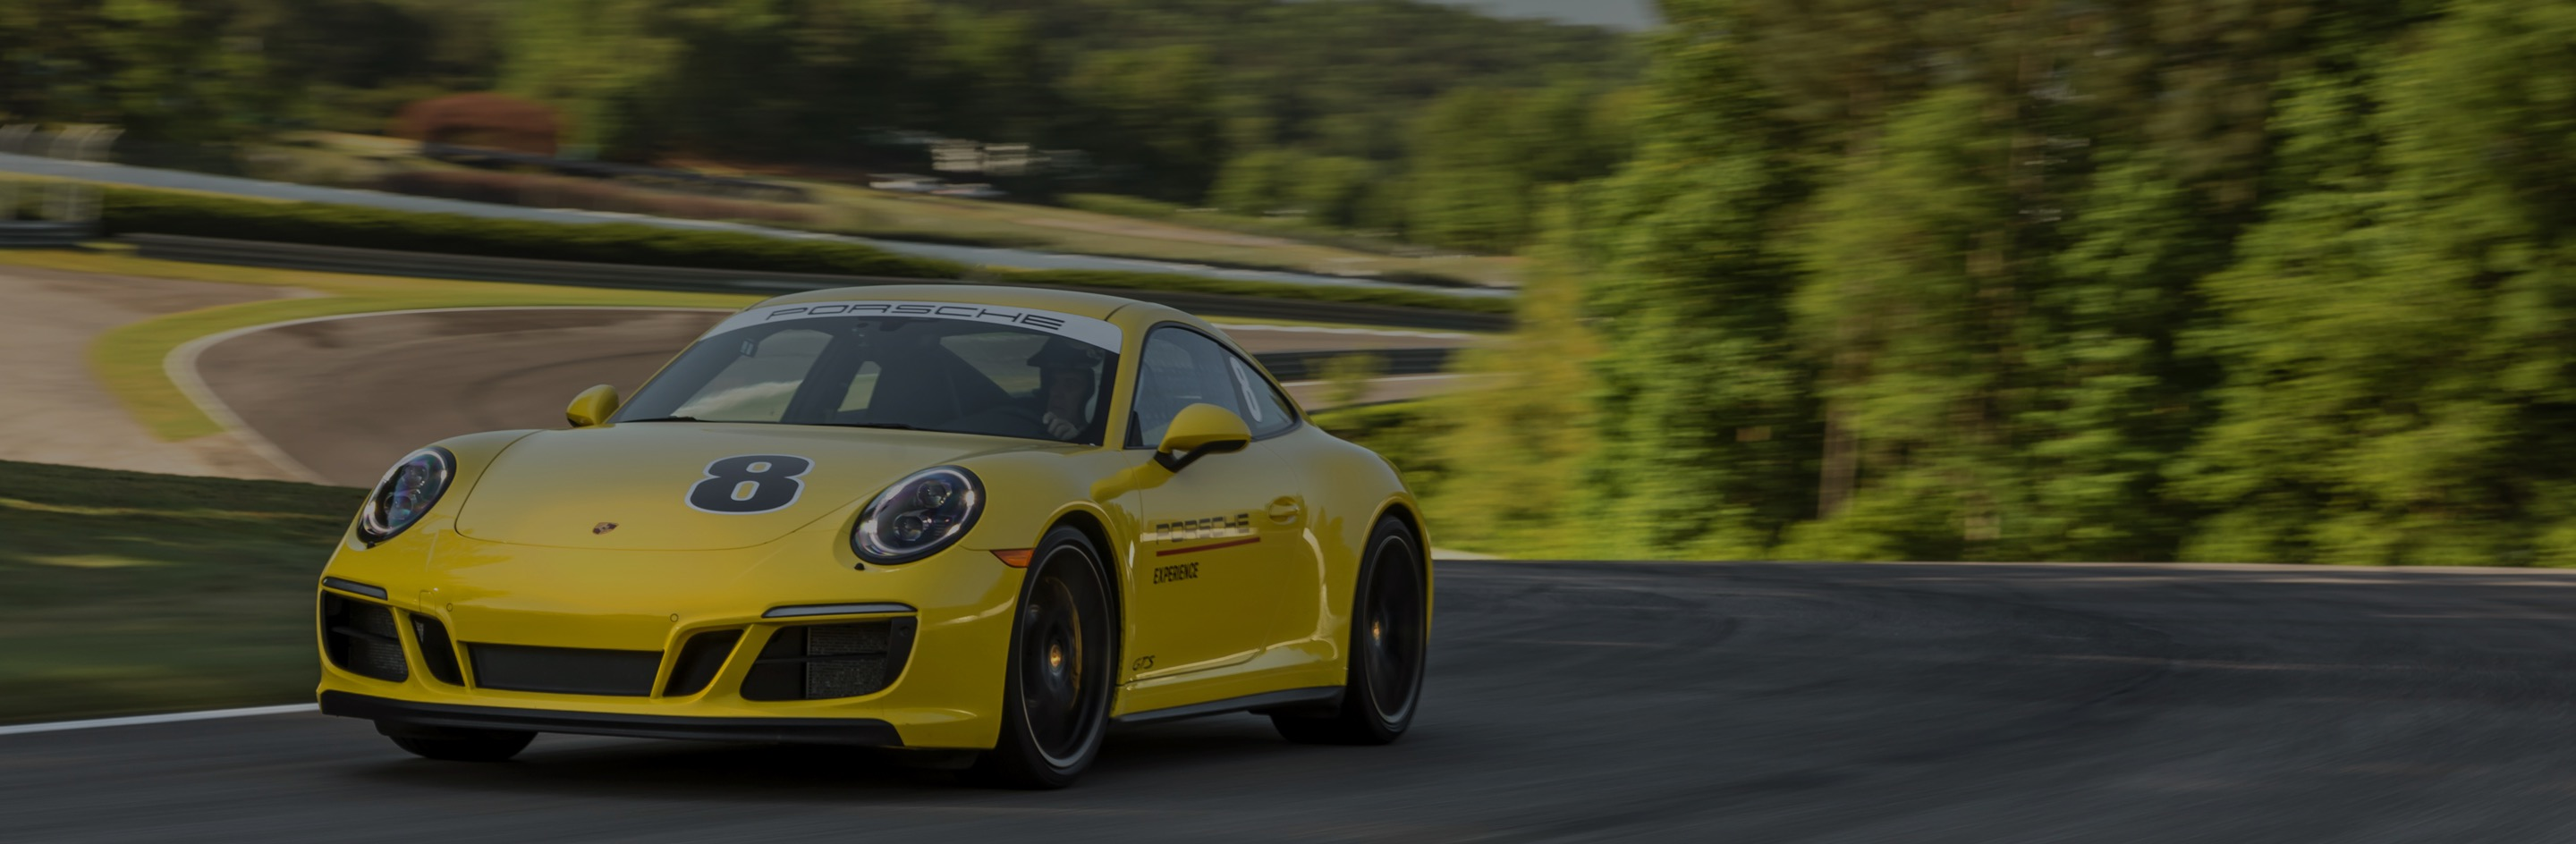 yellow porsche on the track